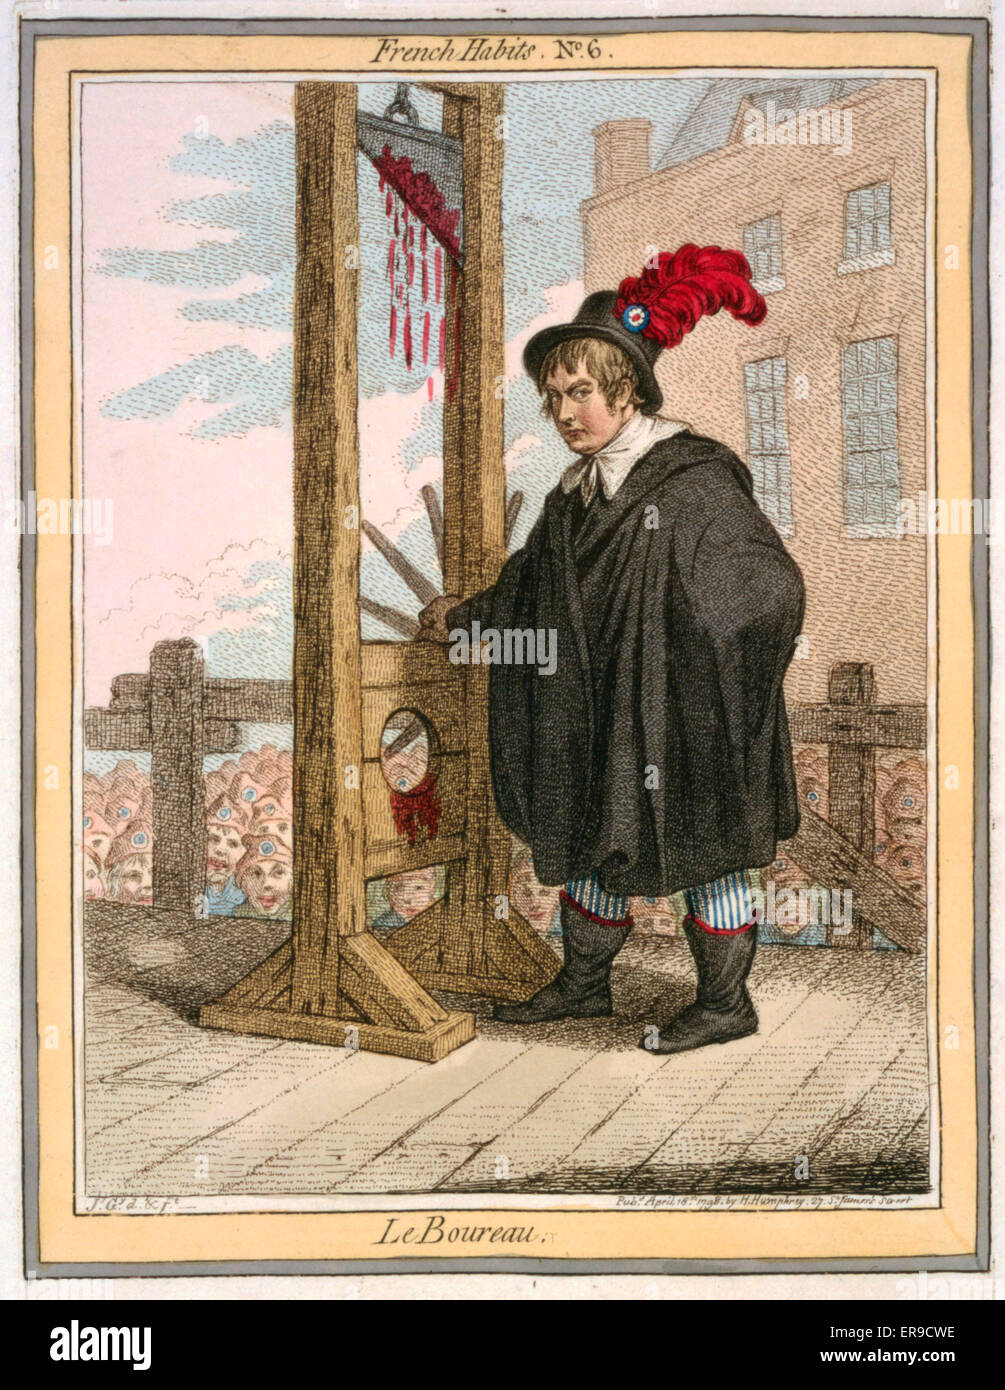 Le Boureau. Cartoon shows George Tierney dressed as an executioner standing next to a guillotine with a crowd of - Stock Image